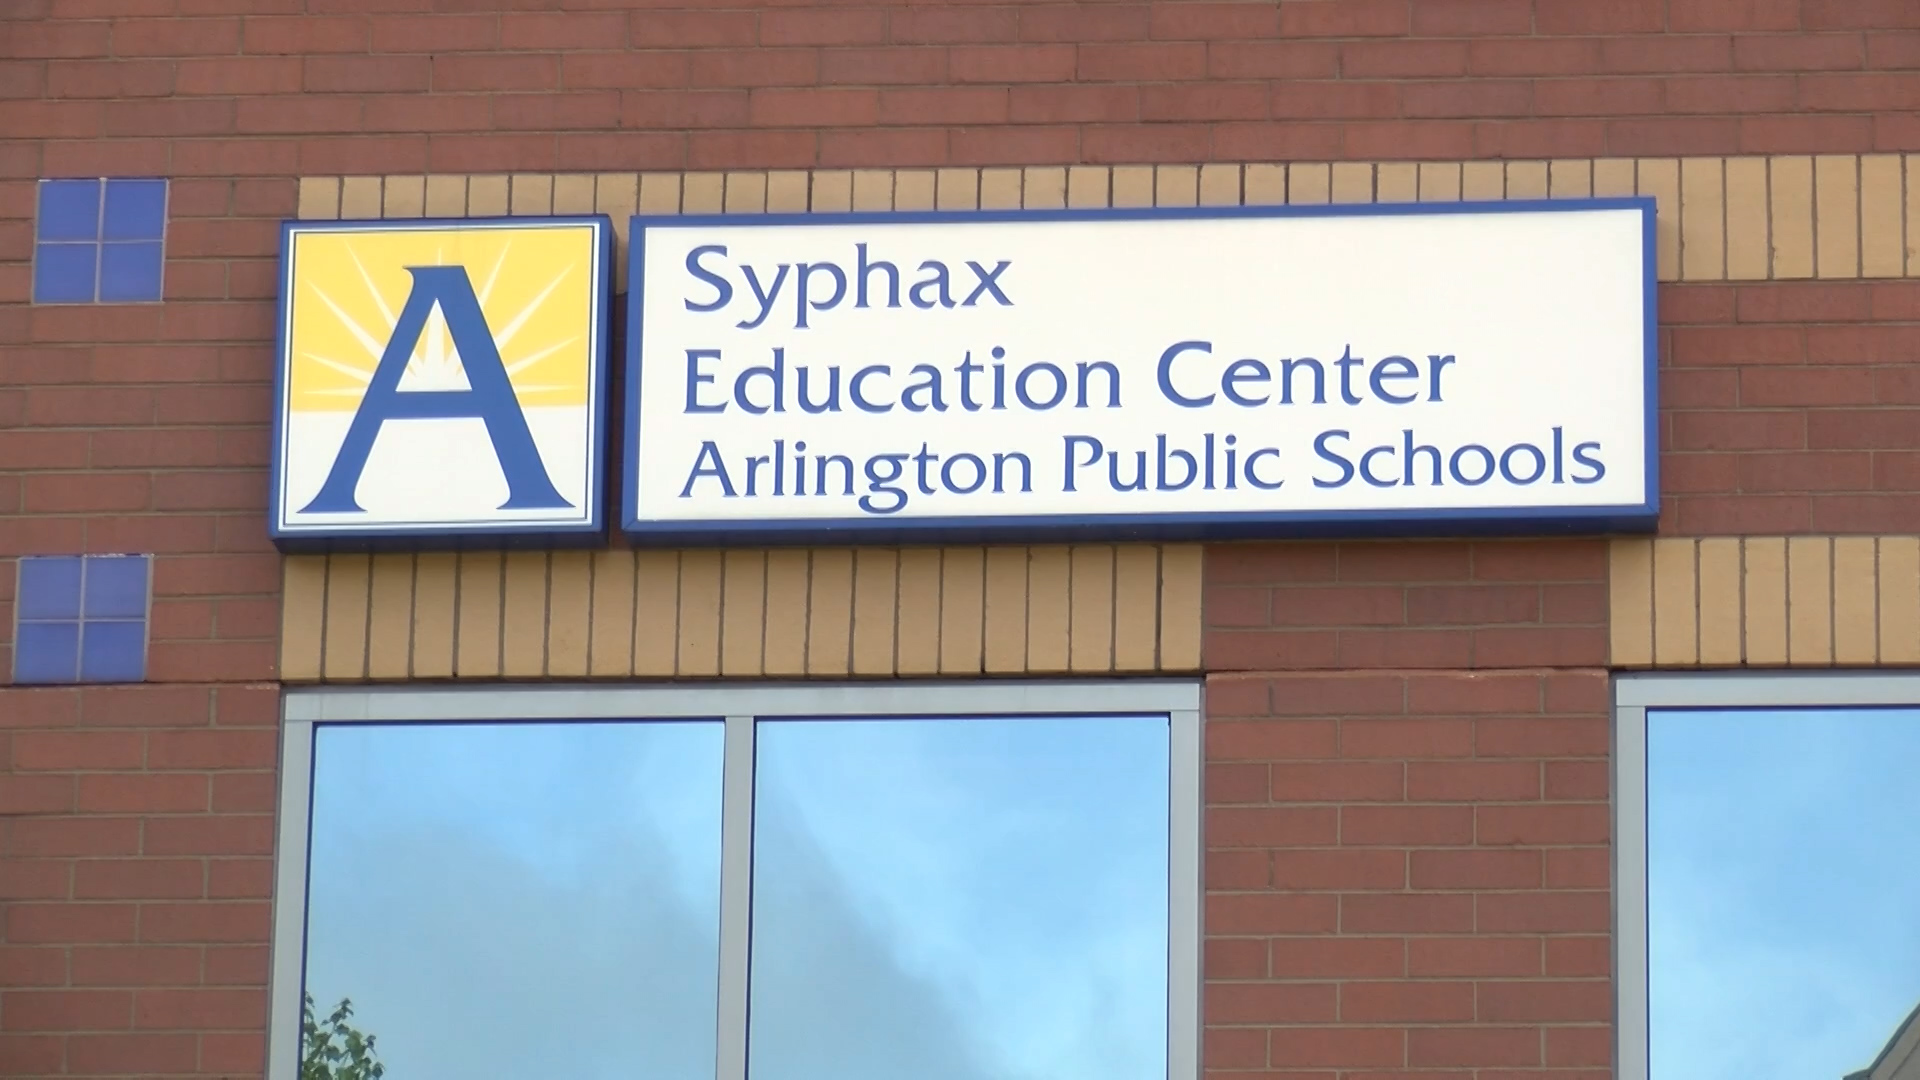 Arlington Public Schools possibly may add 4 religious holidays to